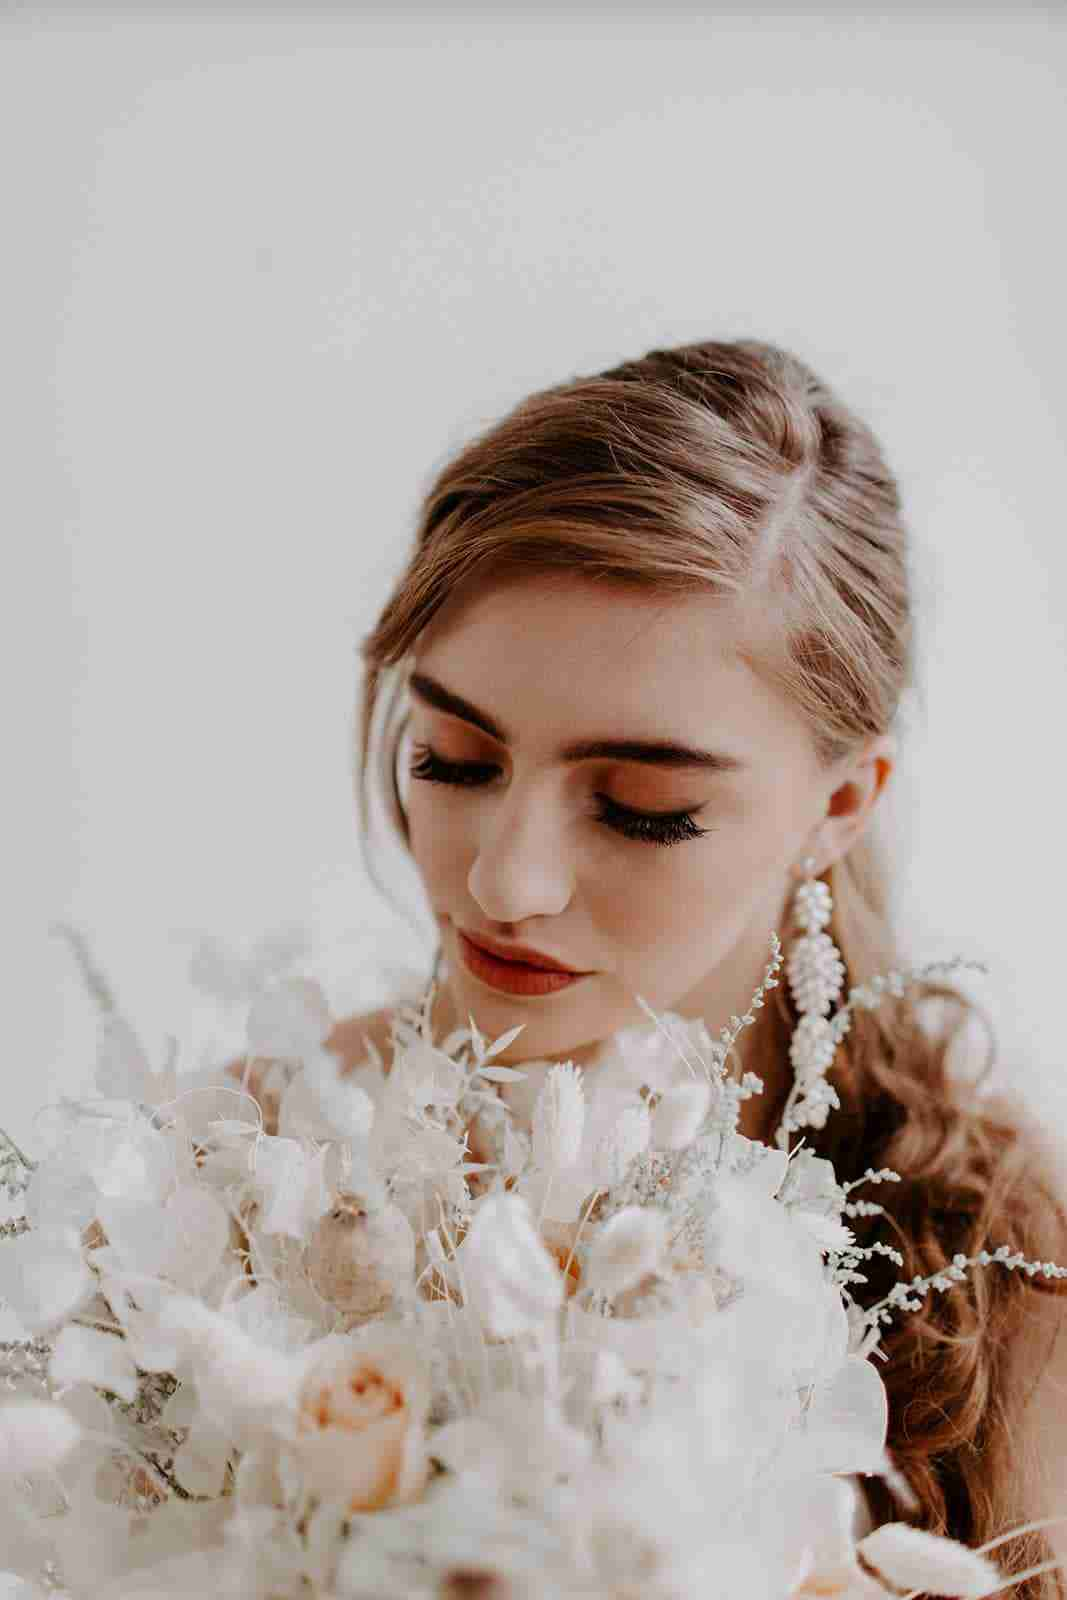 Modern bride holds dried floral bouquet below chin with eyes closed, showing smokey eye makeup and fluffy individual lashes. Bride's hair and makeup is flawless, glowing, warm toned.